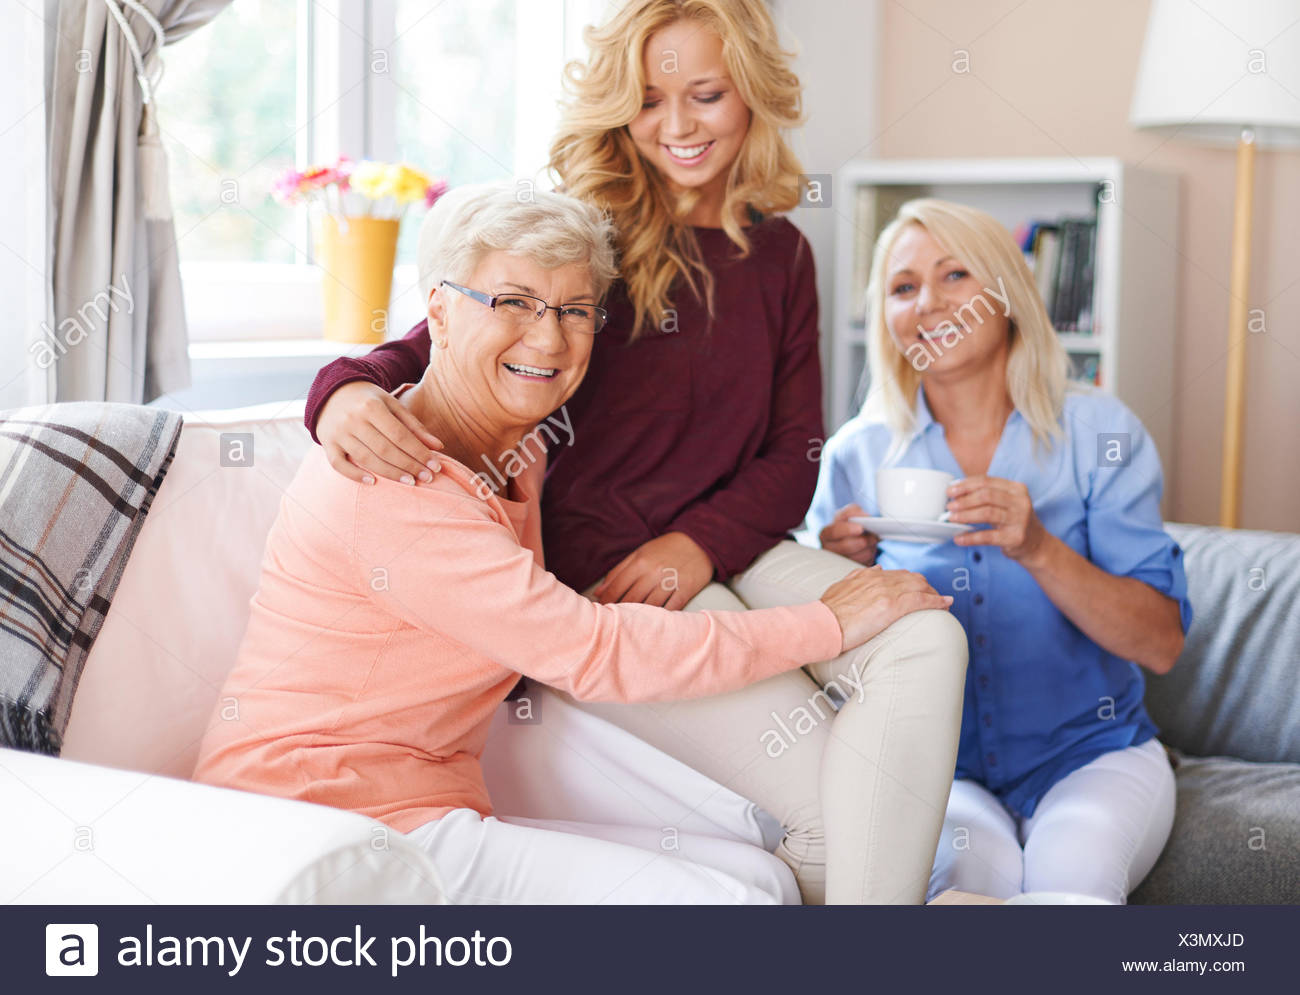 I'm happy when I can host my family. Debica, Poland - Stock Image